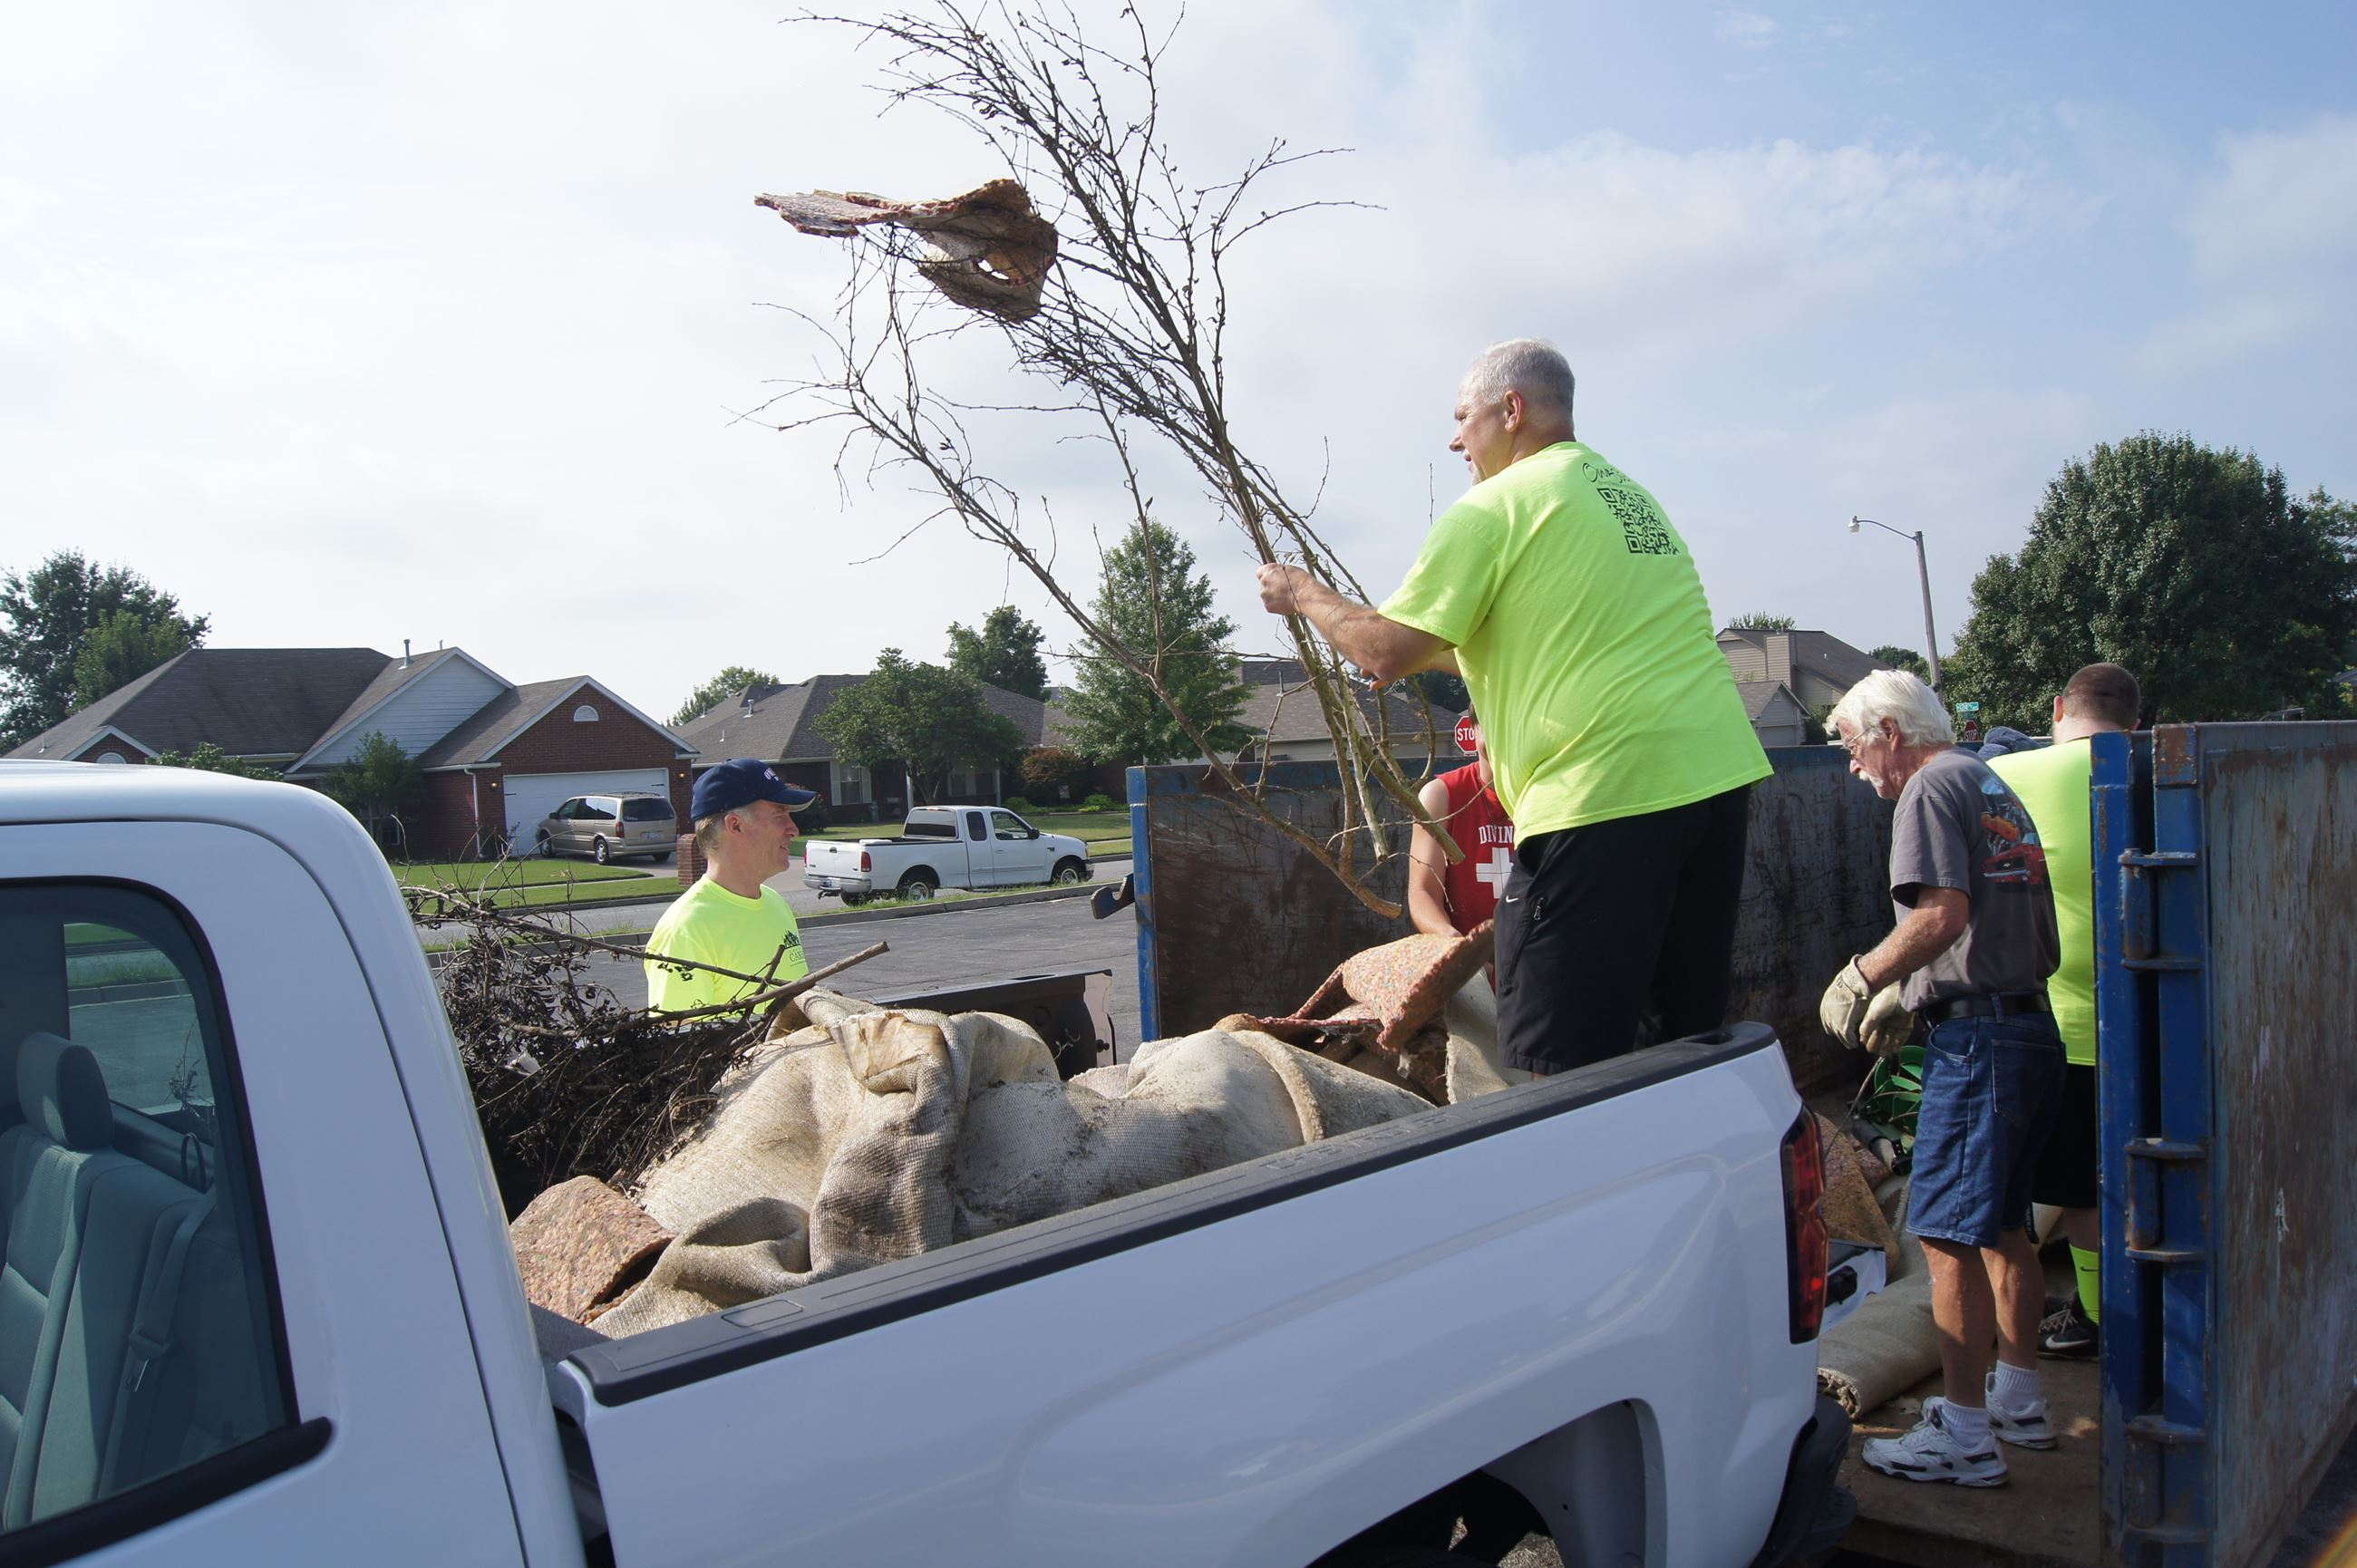 Volunteers unloading truck with debris into dumpster